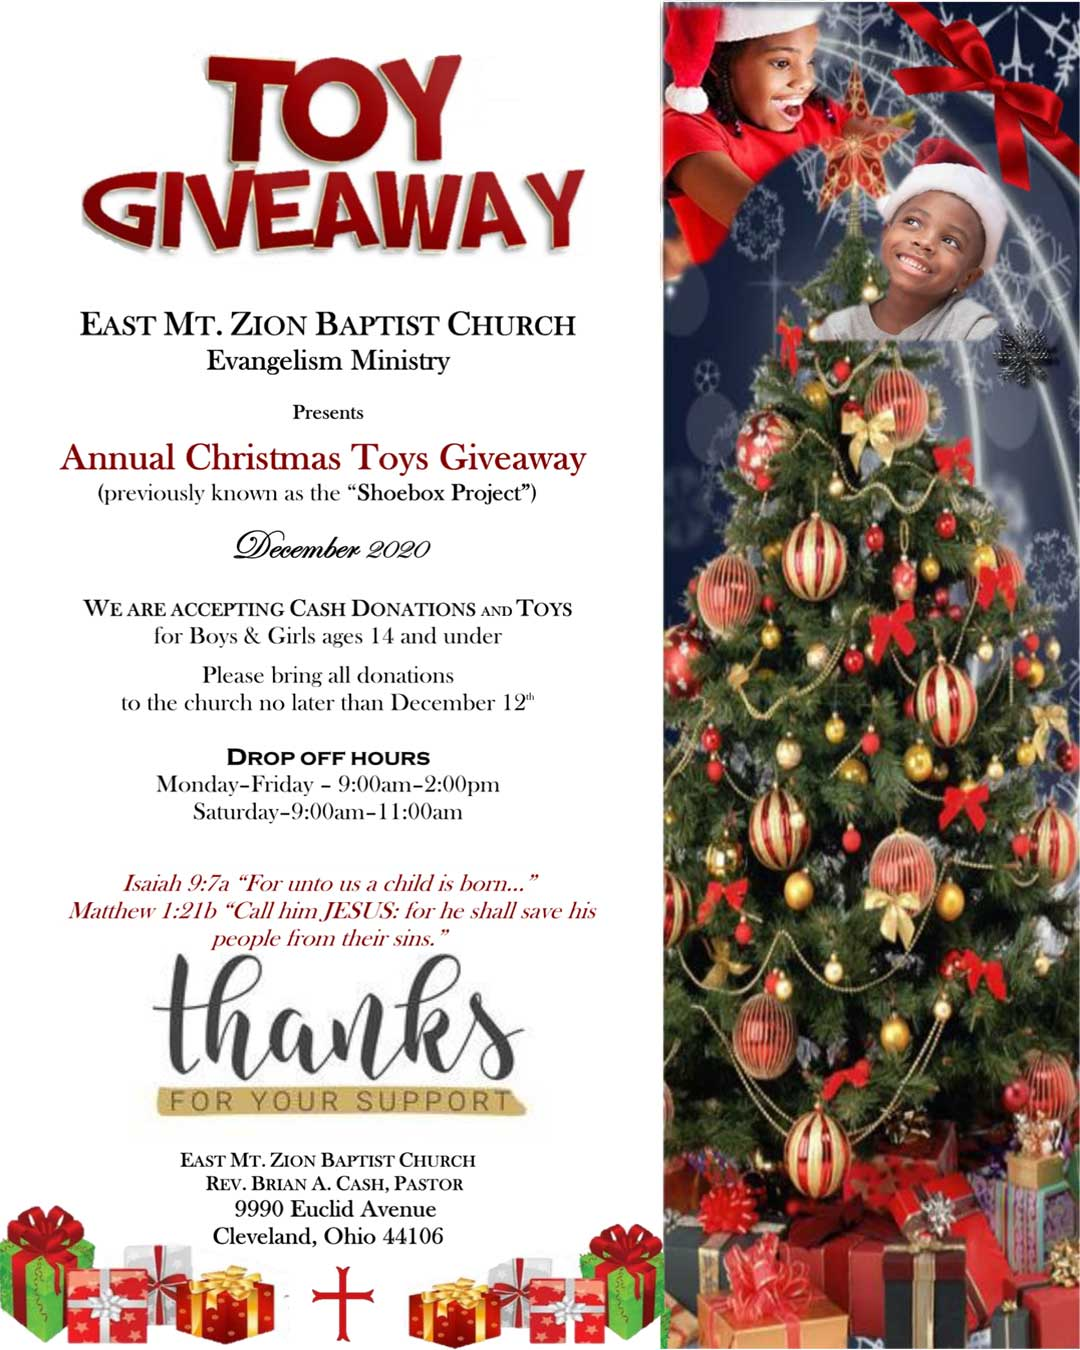 Christmas Toy Giveaway 2020 Annual TOY GIVEAWAY   EMZ Evangelism Ministry   East Mount Zion